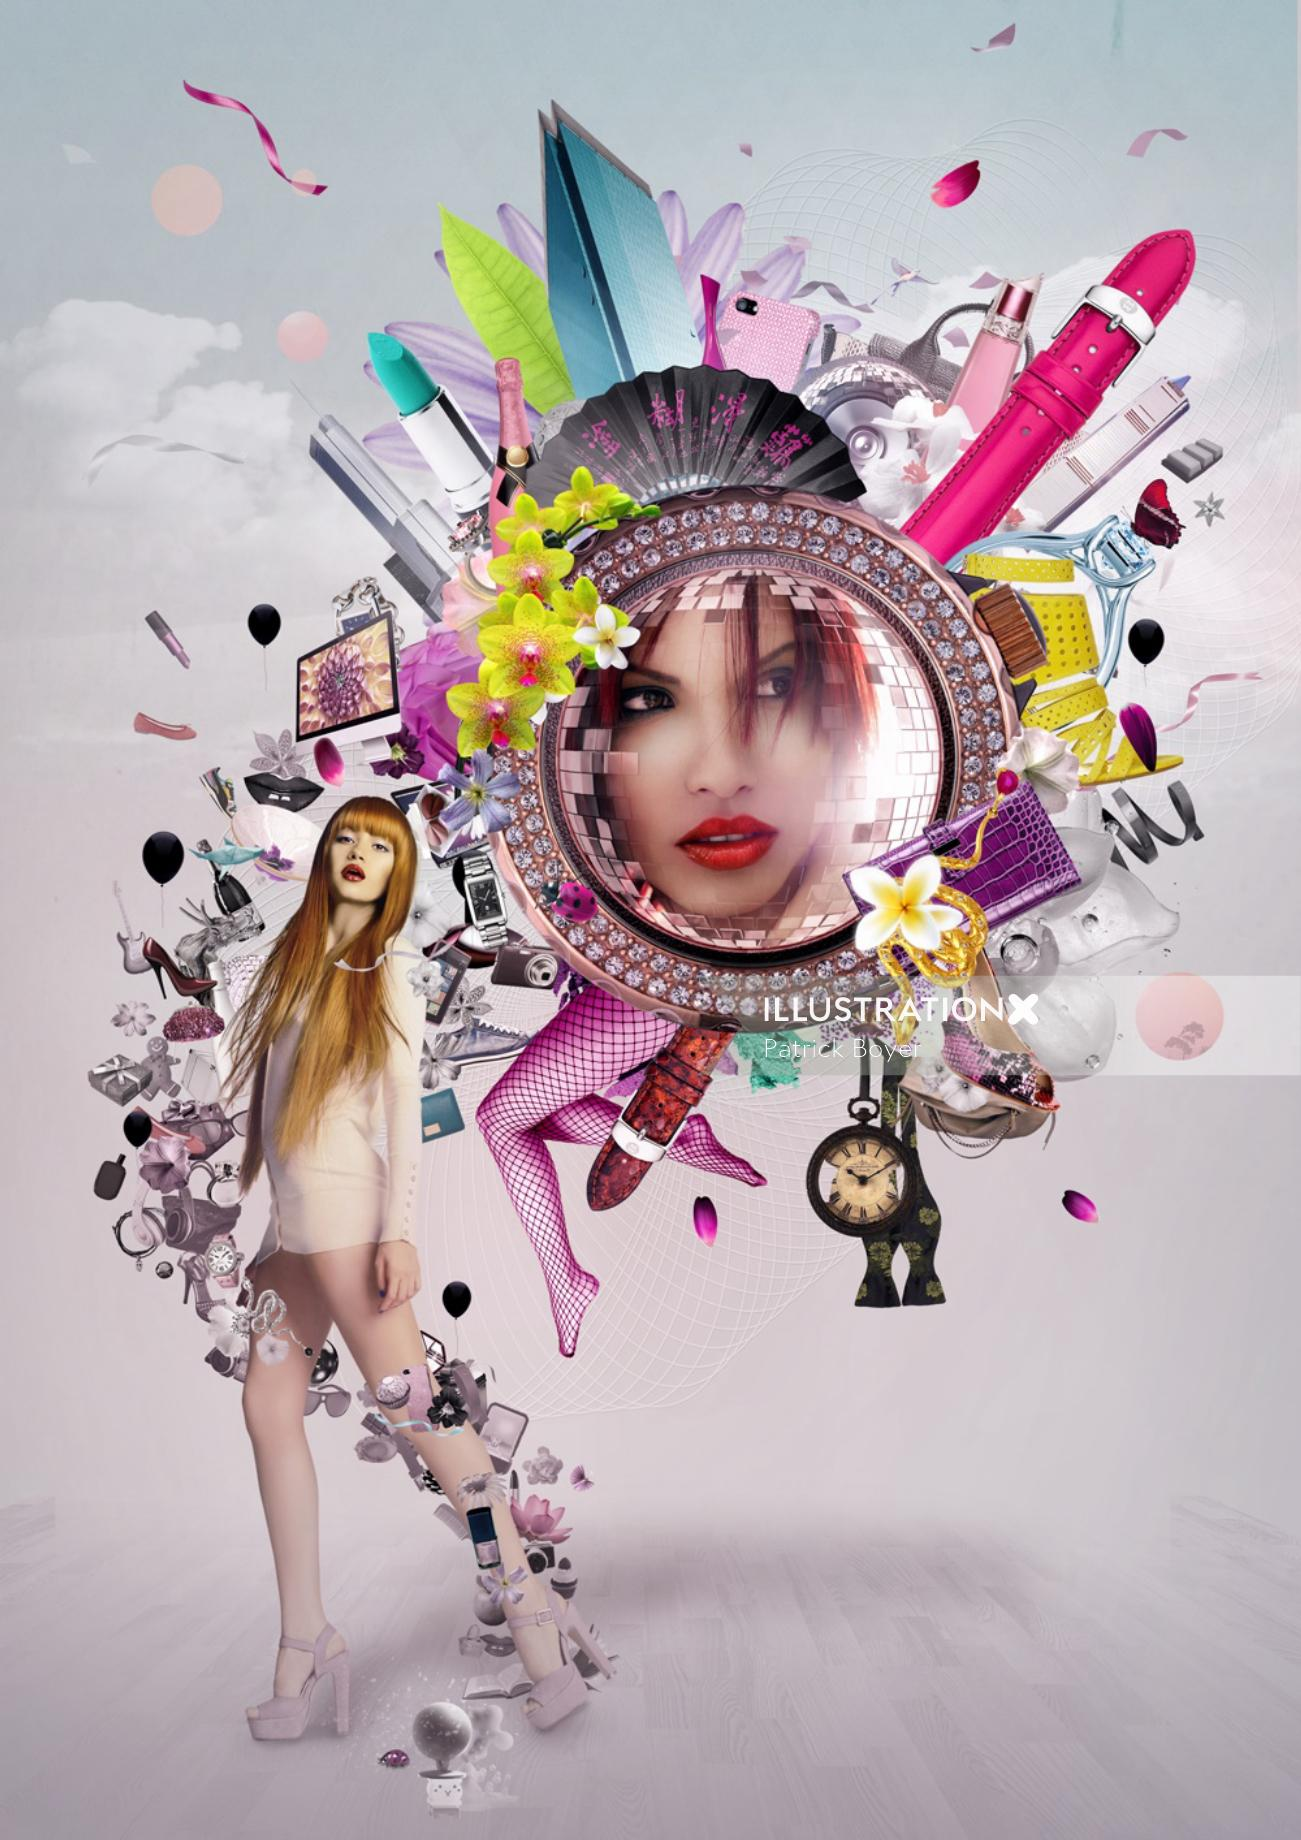 conceptual illustration of Fashion woman